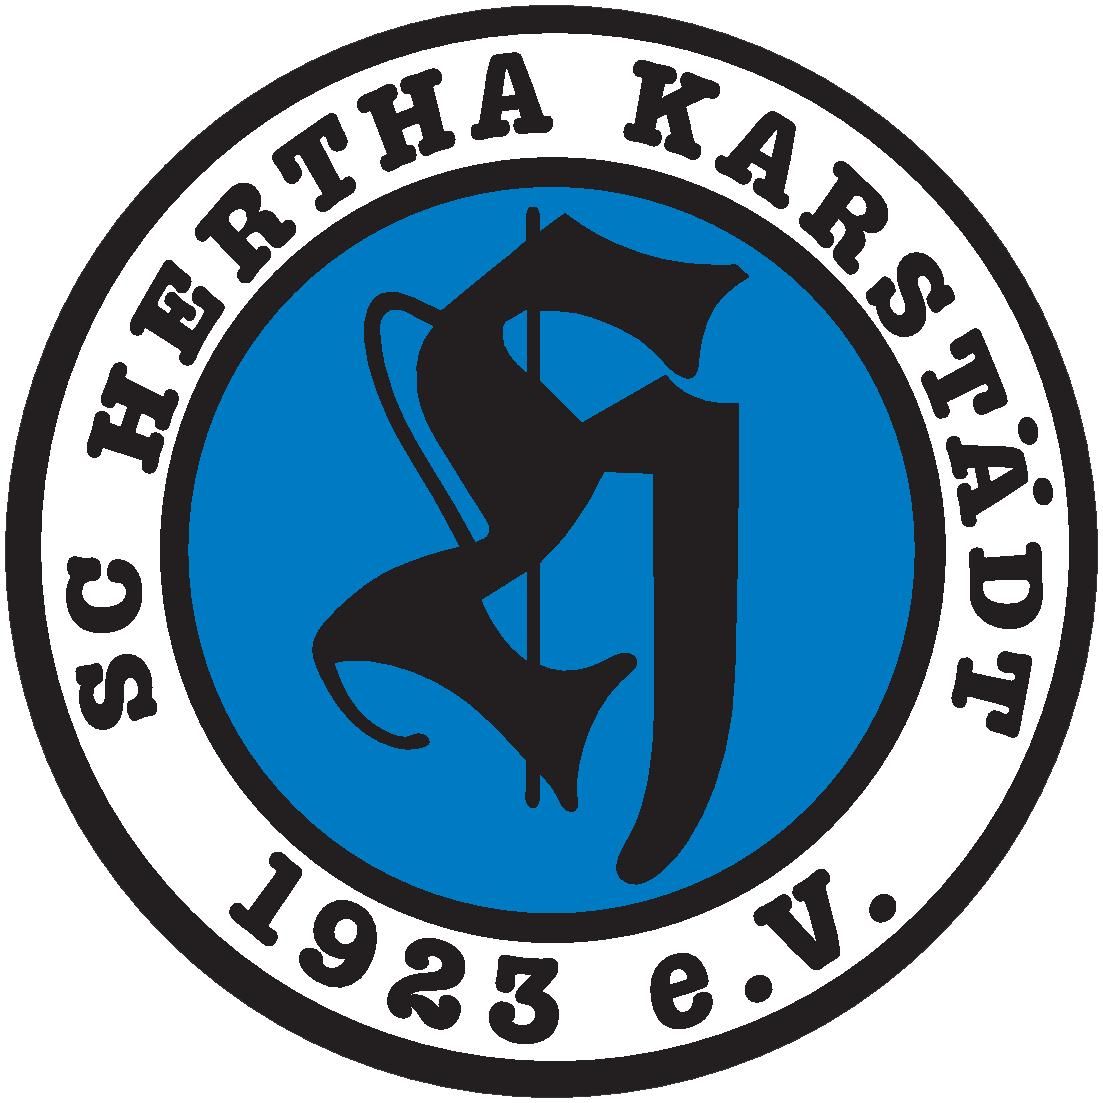 Hertha_logo_original